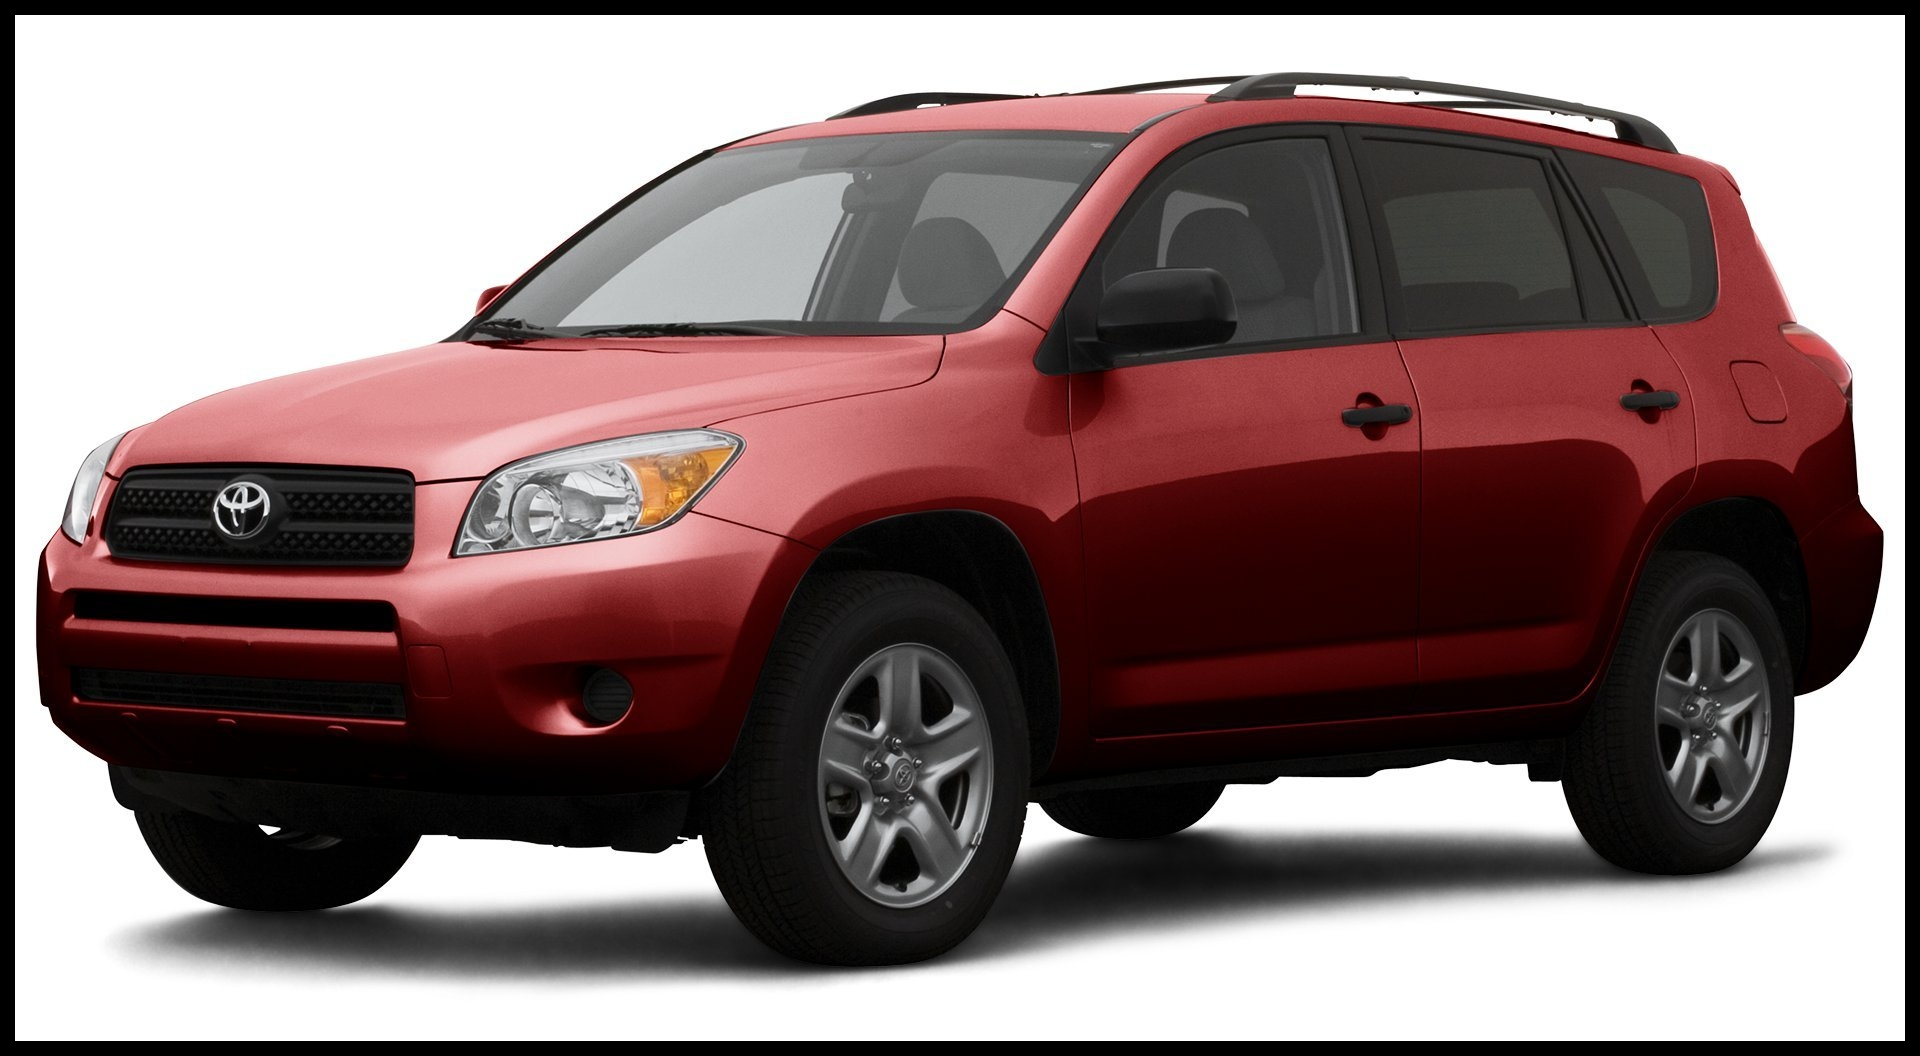 2007 Toyota RAV4 2 Wheel Drive 4 Door 4 Cylinder GS